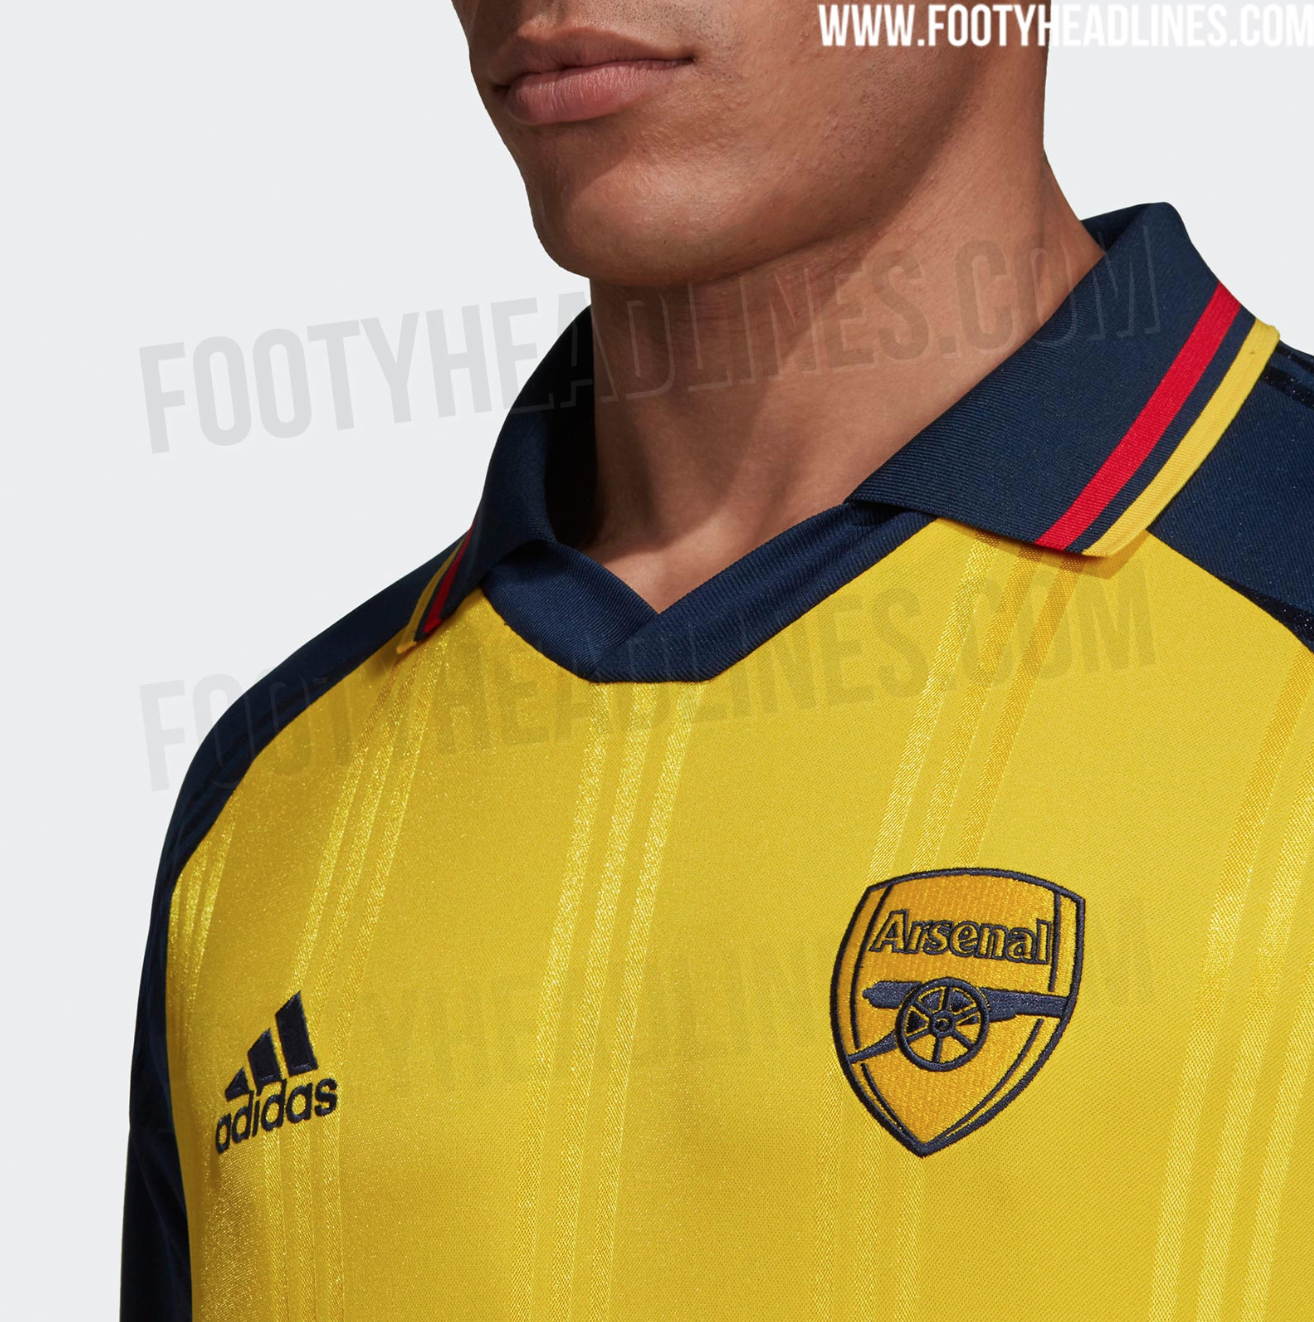 official photos 4fdd1 dae29 New Arsenal Adidas Yellow